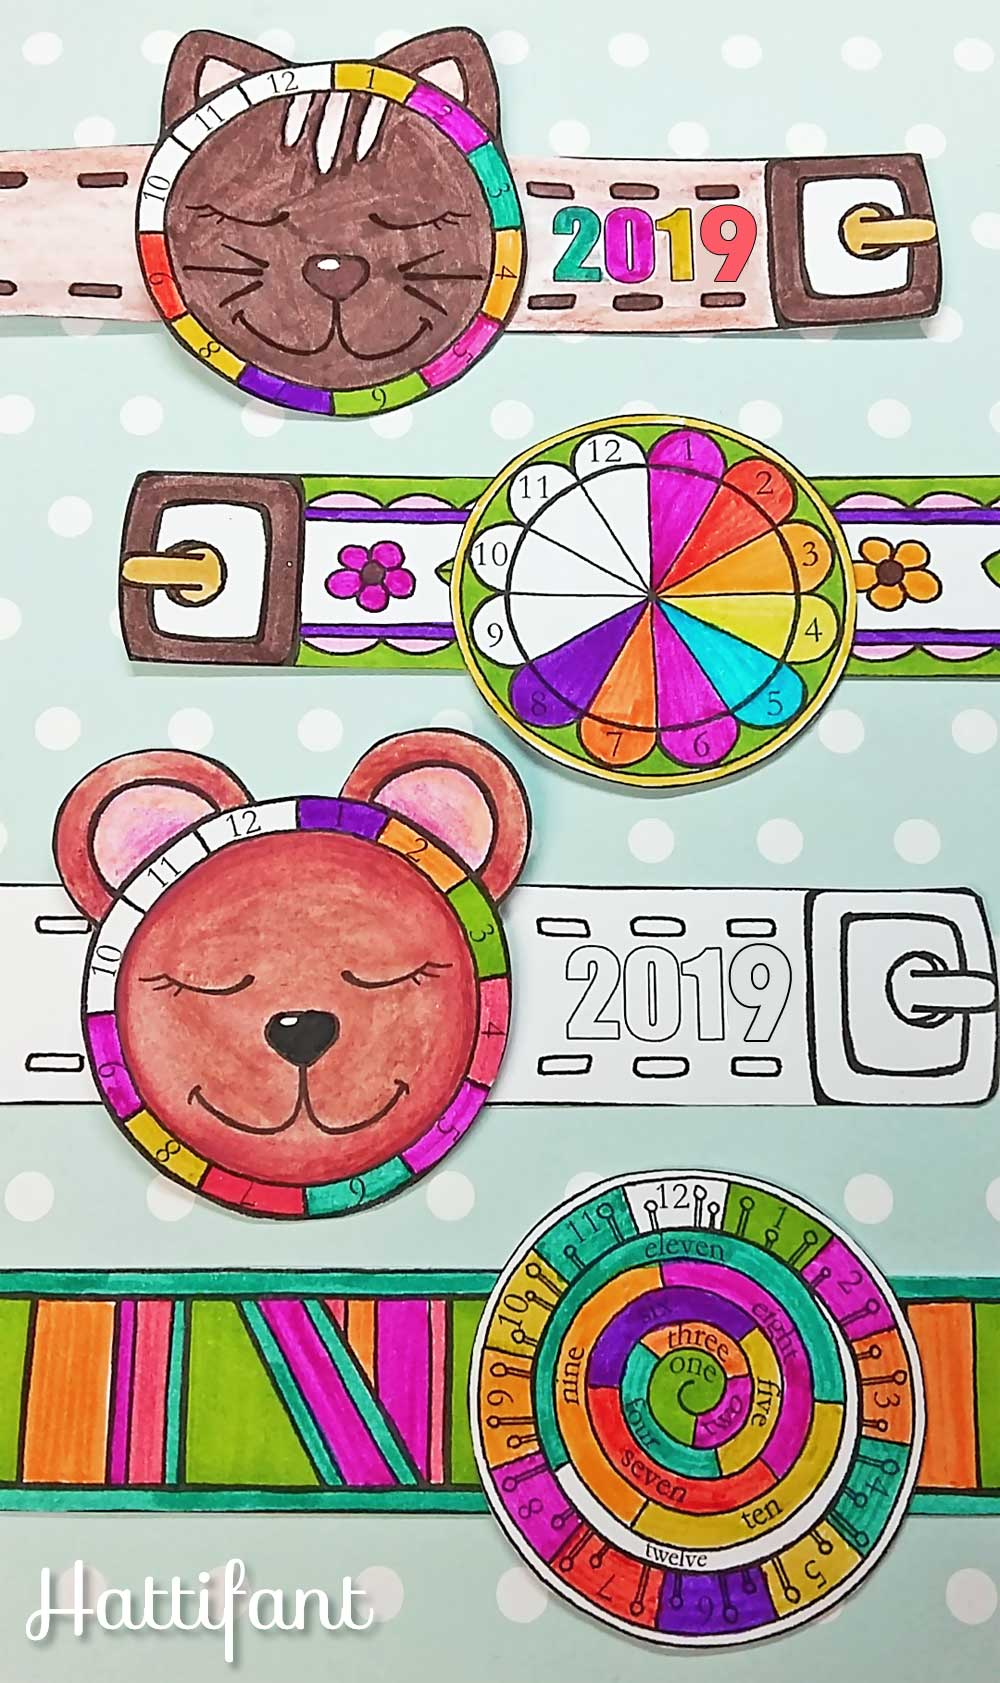 Hattifant's New Year Countdown Wristwatch Papercraft to color in 2019